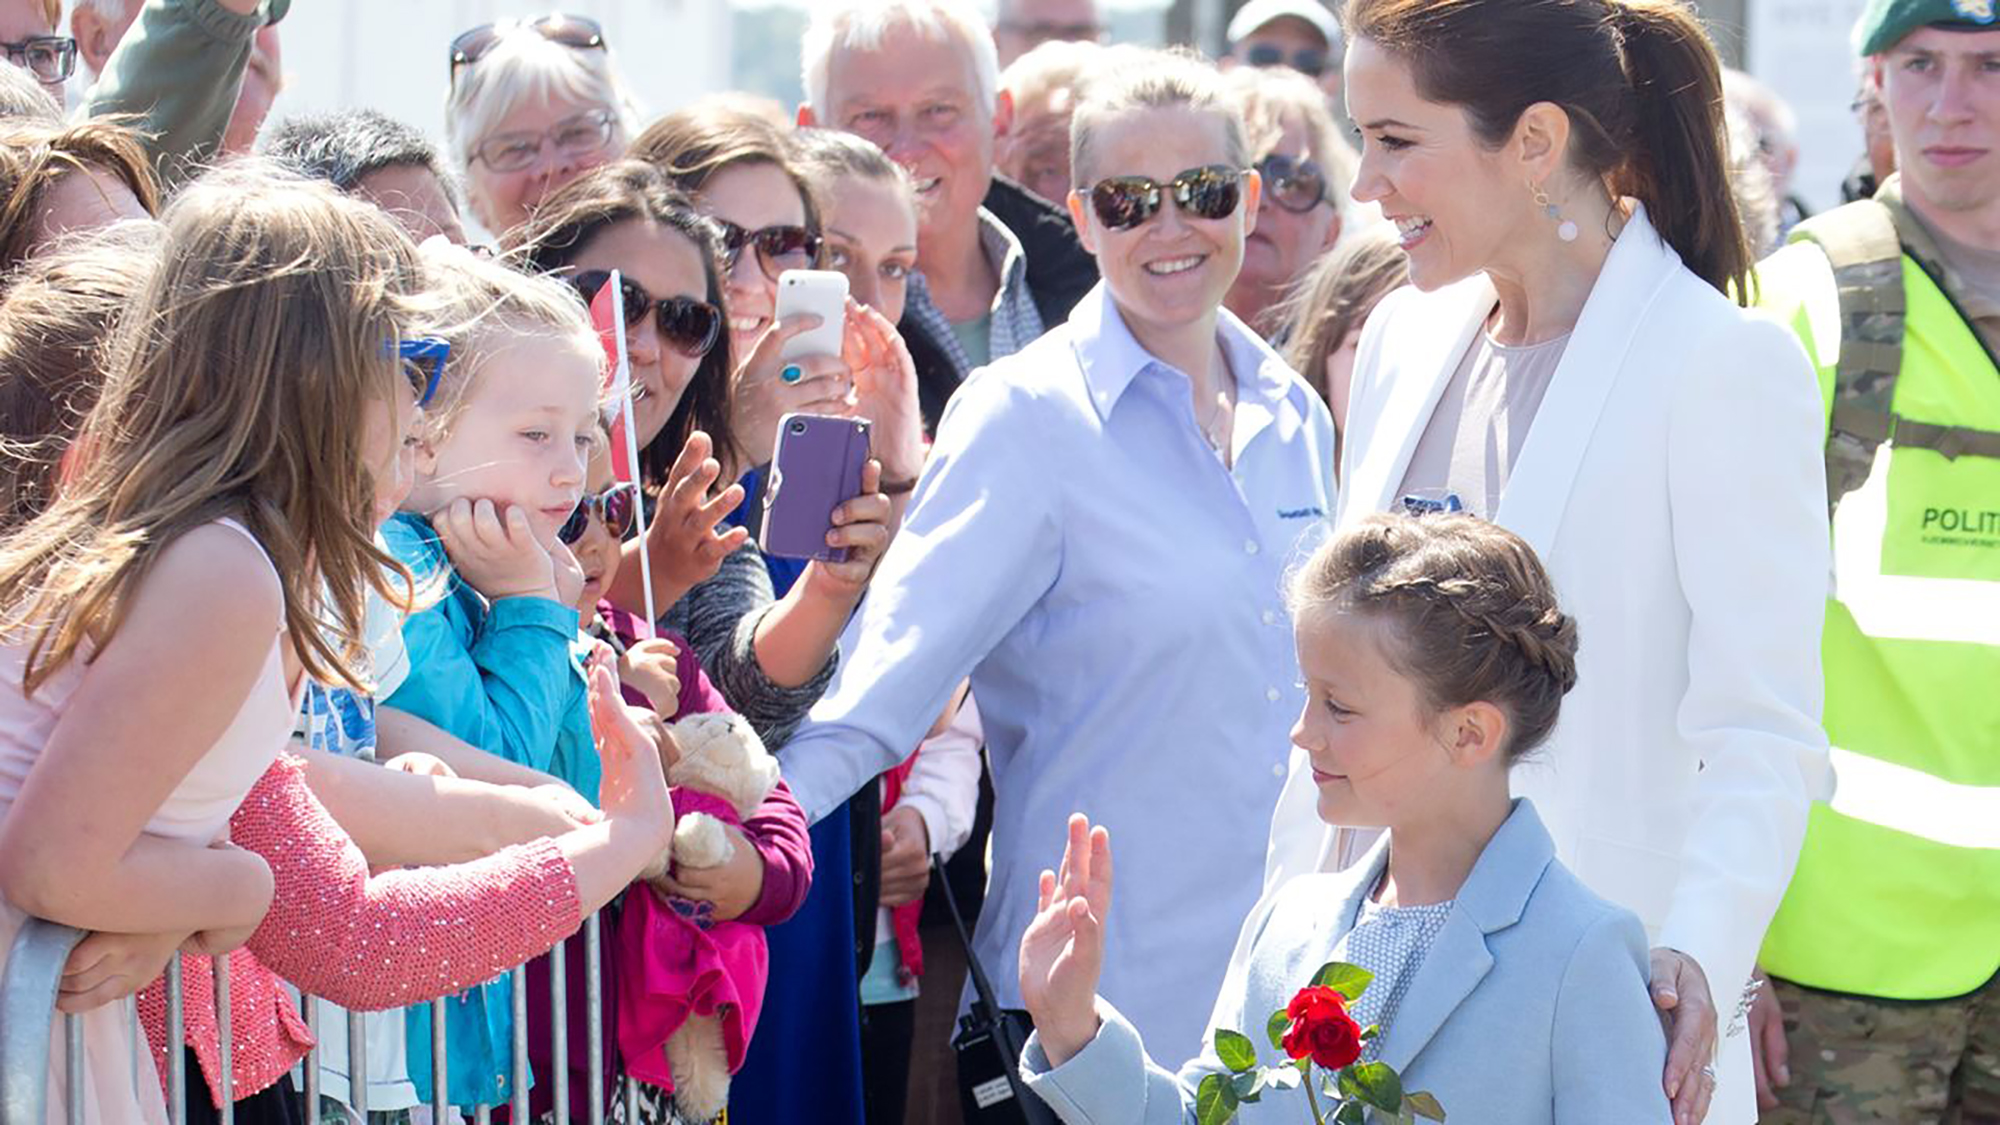 As she steps out for her first public engagement, Princess Isabella looks the spitting image of mother Mary